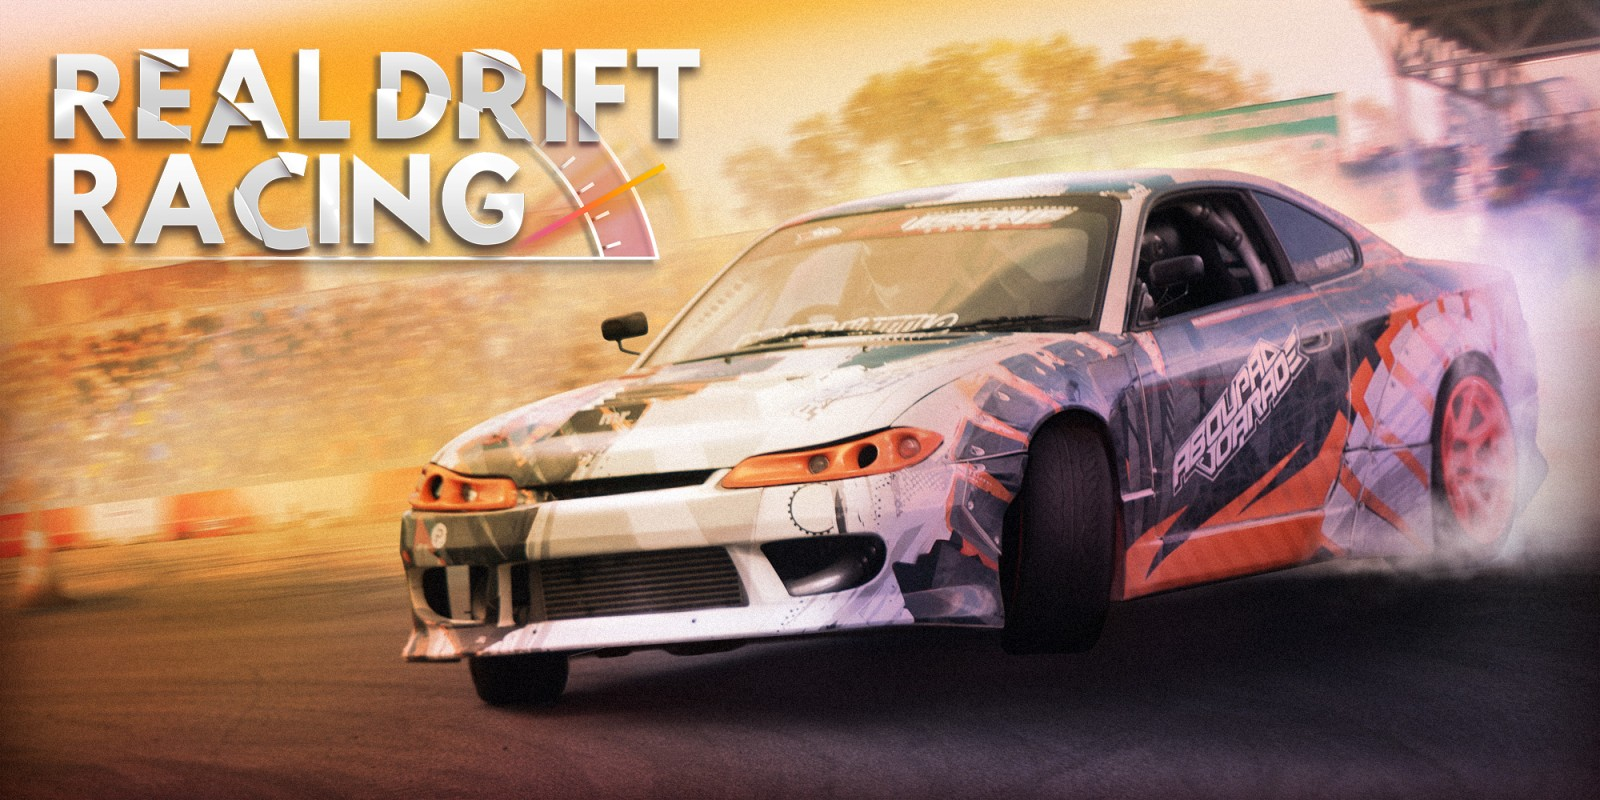 Real Drift Racing